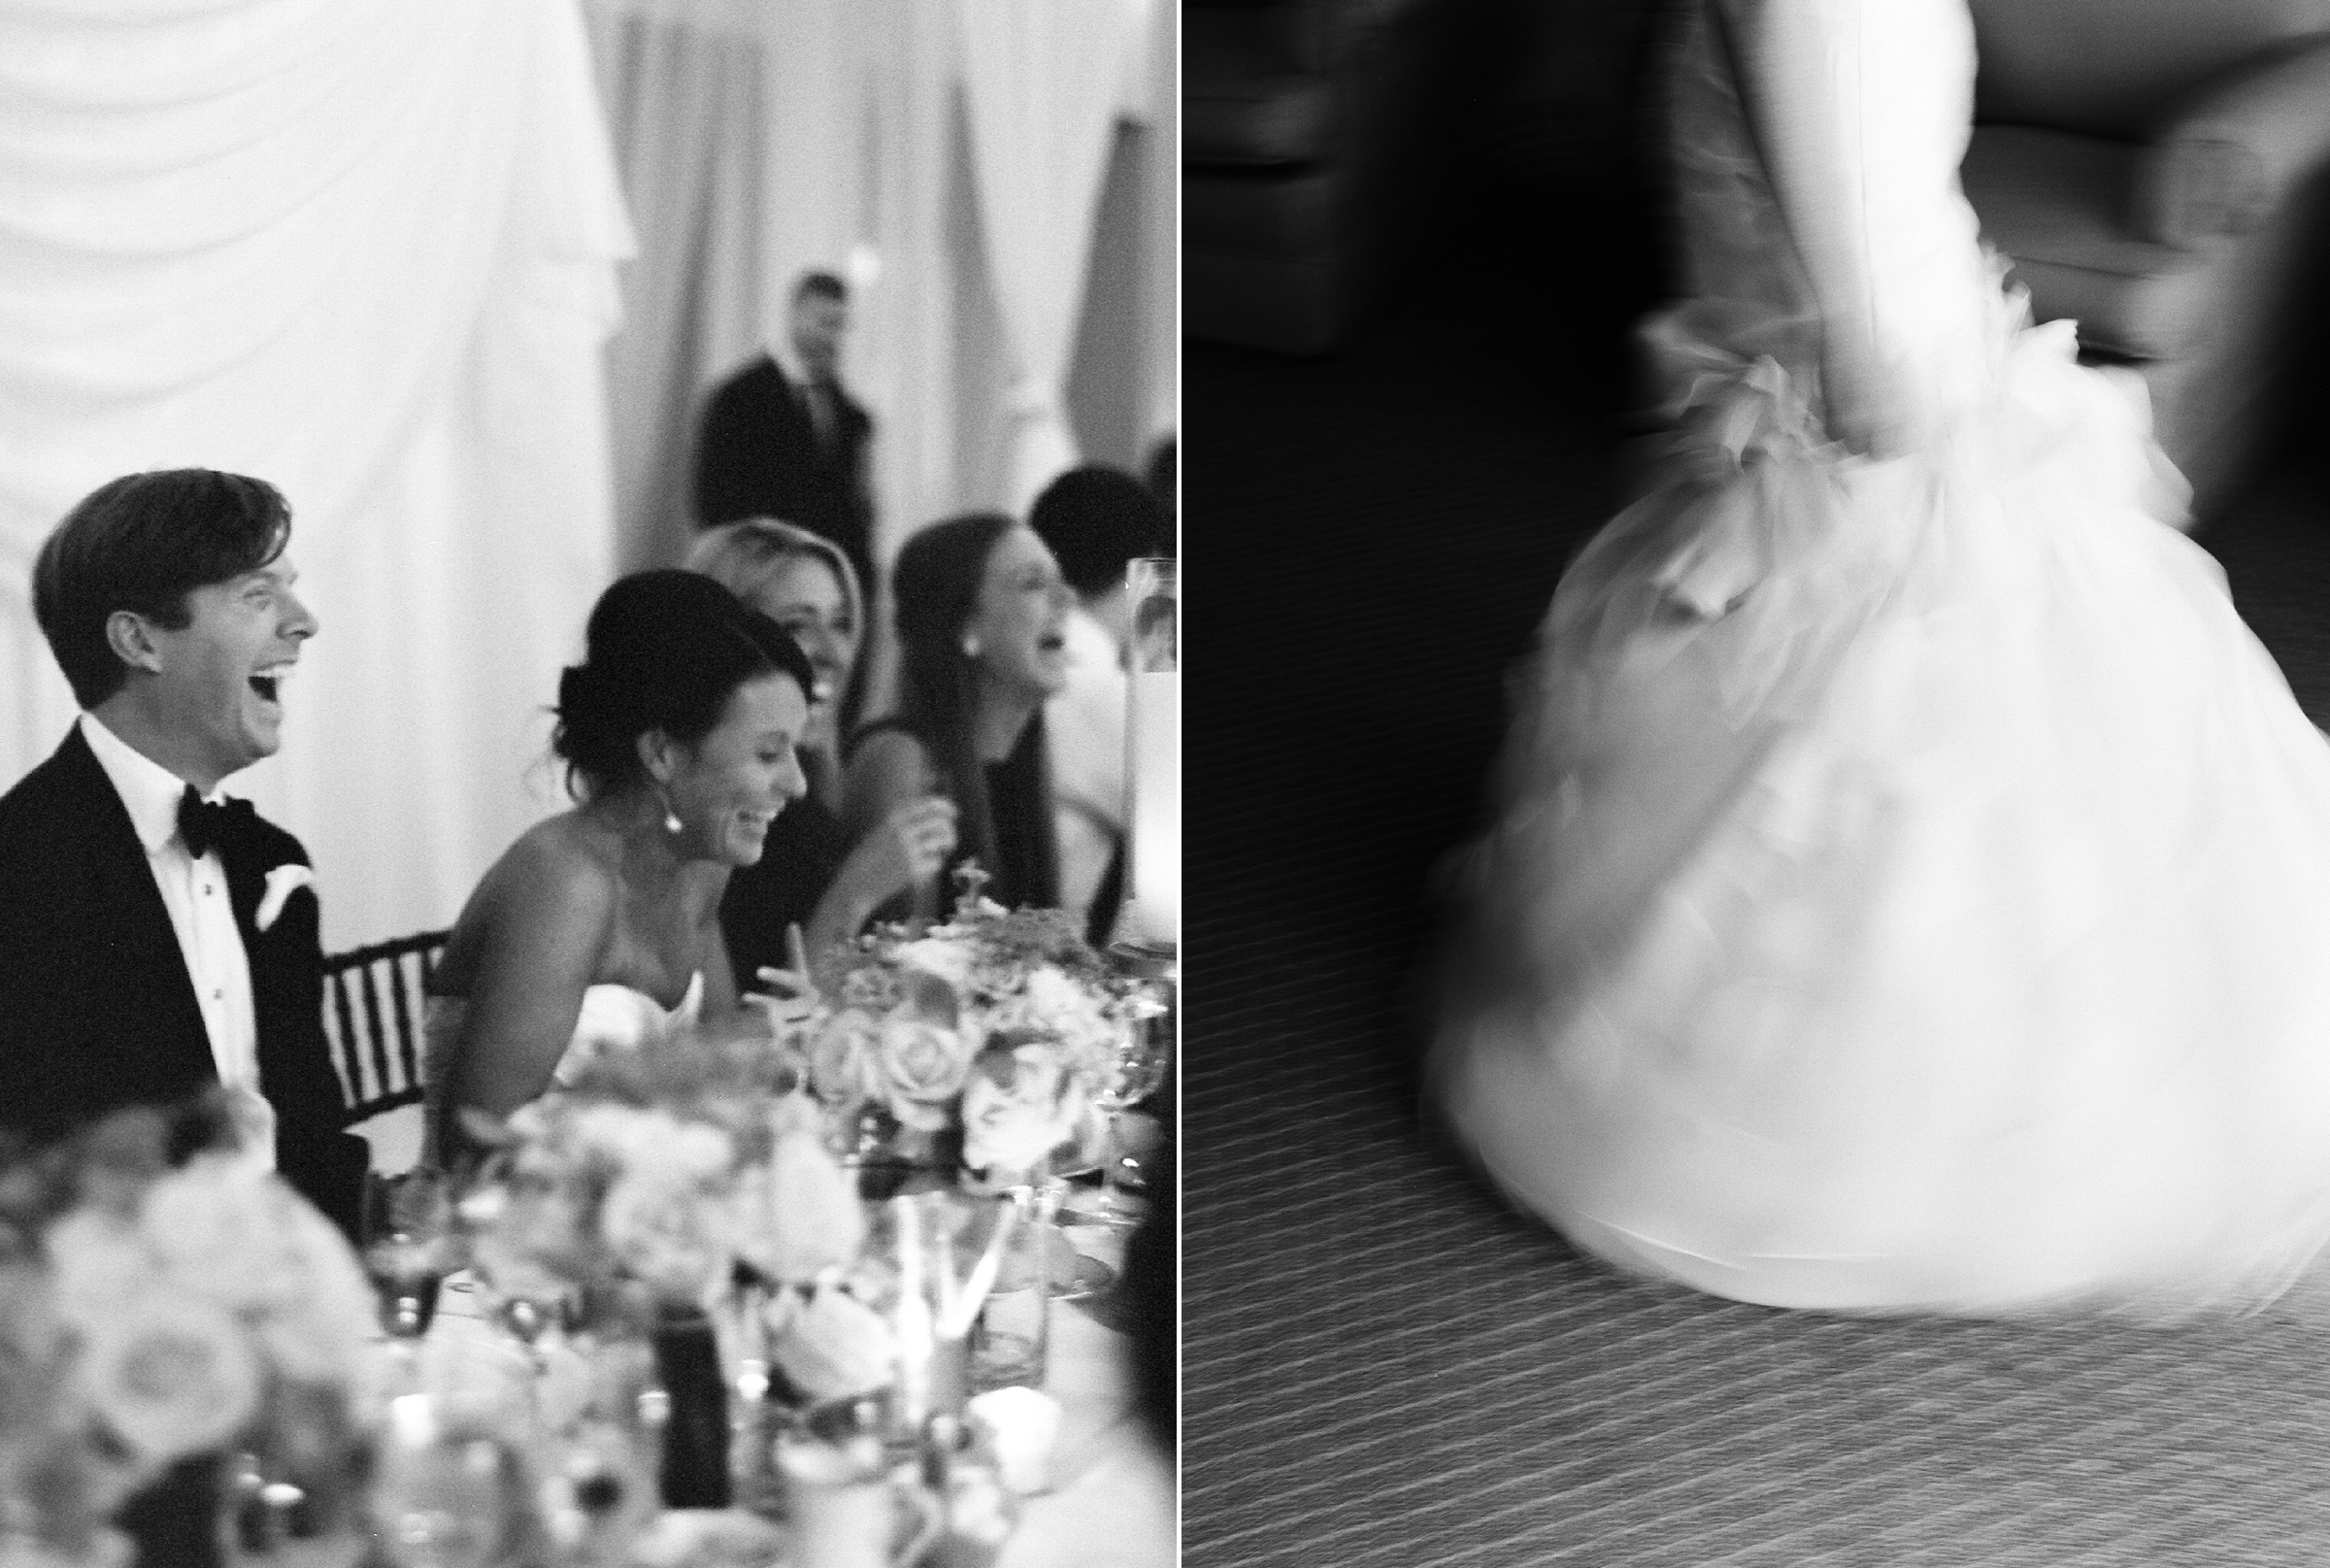 rosemary_beach_film_wedding_photographer_shannon_griffin_0004.jpg